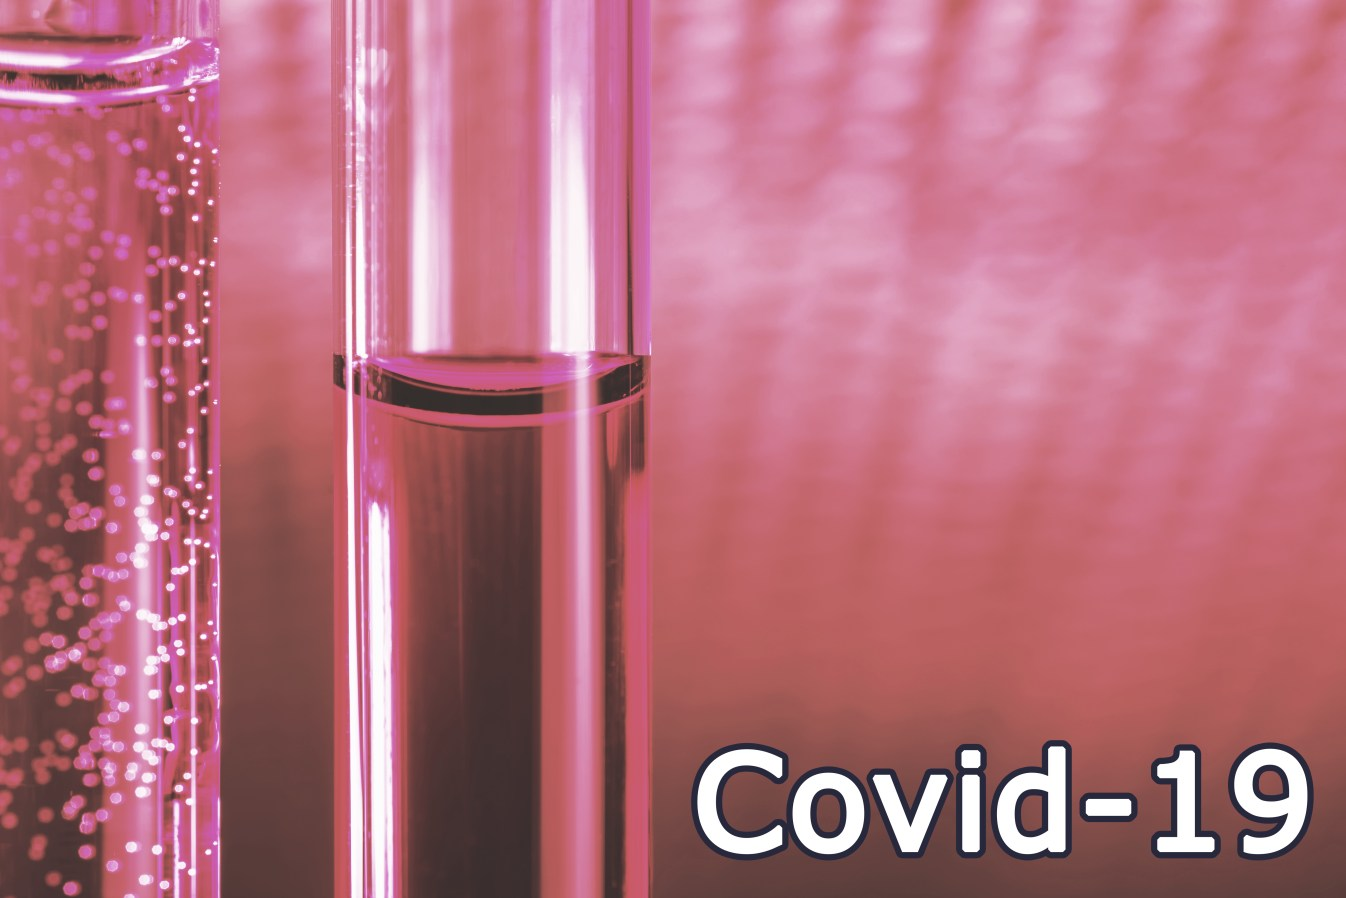 Covid-19. Red liquid vaccine in glass tubes.. Cases of COVID-19 illustration. Image credit: Ivan Uralsky. vaccine hesitancy concept. Also to illustrate article re: emergency use authorisation. Oxford/AstraZeneca vaccine. Also used in coverage of vaccine hoarding. Vaccination campaign concept. Cost of COVID-19 vaccine concept. vaccine shipments concept. Sputnik V illustration.. Also to illustrate vaccine stockpiling.